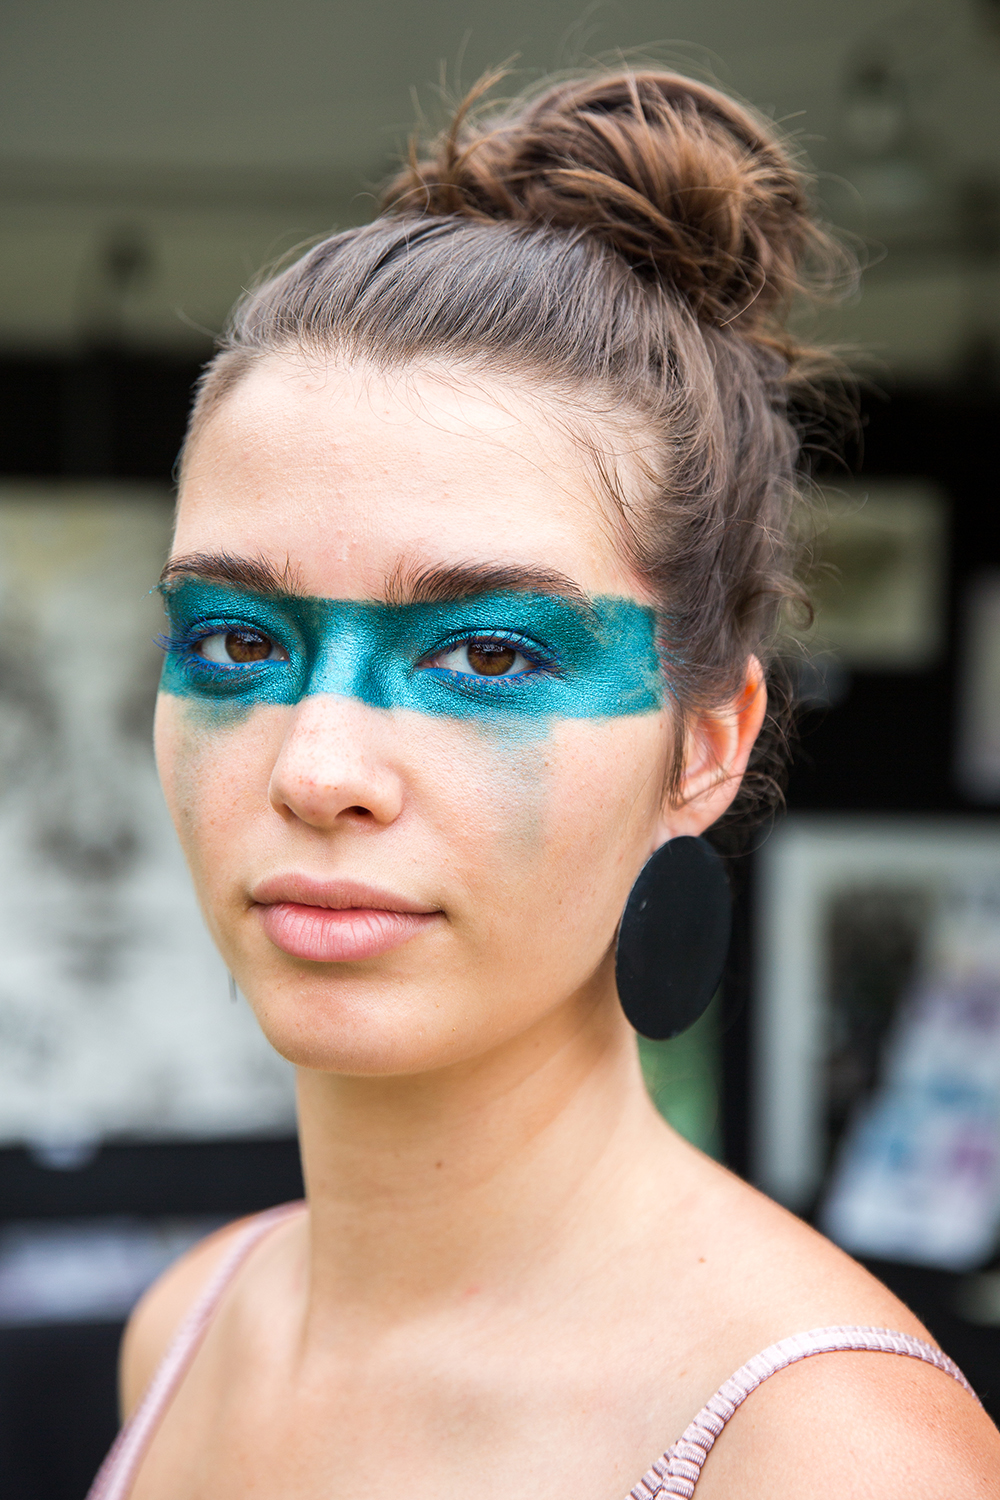 The Coolest Hair And Makeup At Firefly Music Festival 2017 Fashion